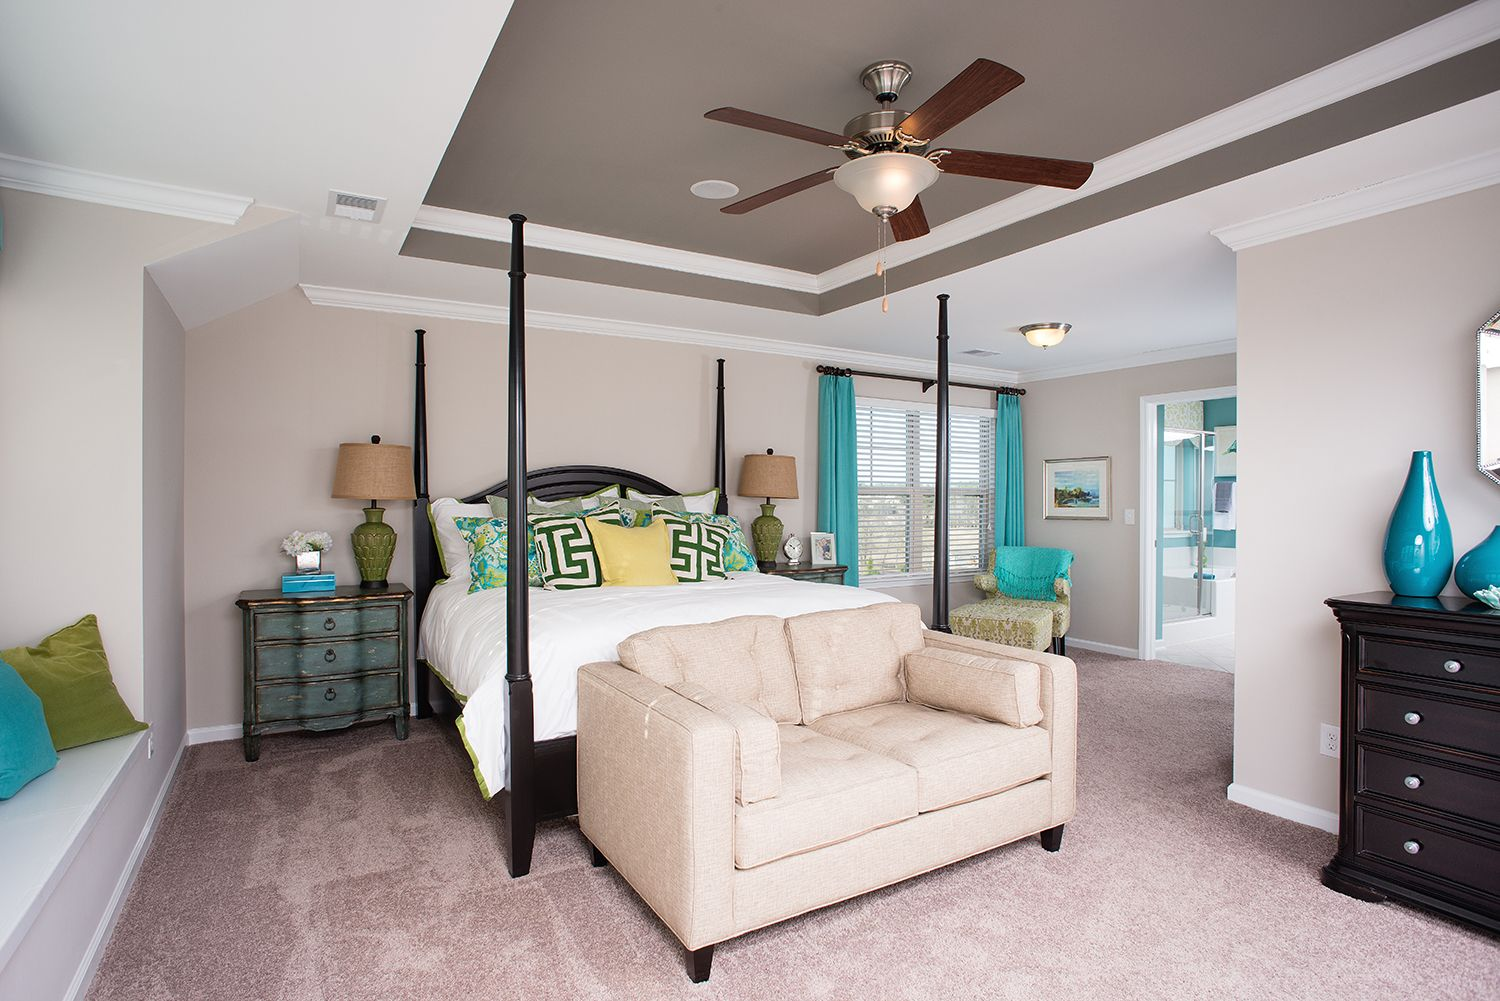 Bedroom featured in The Langford By Goodall Homes in Huntsville, AL